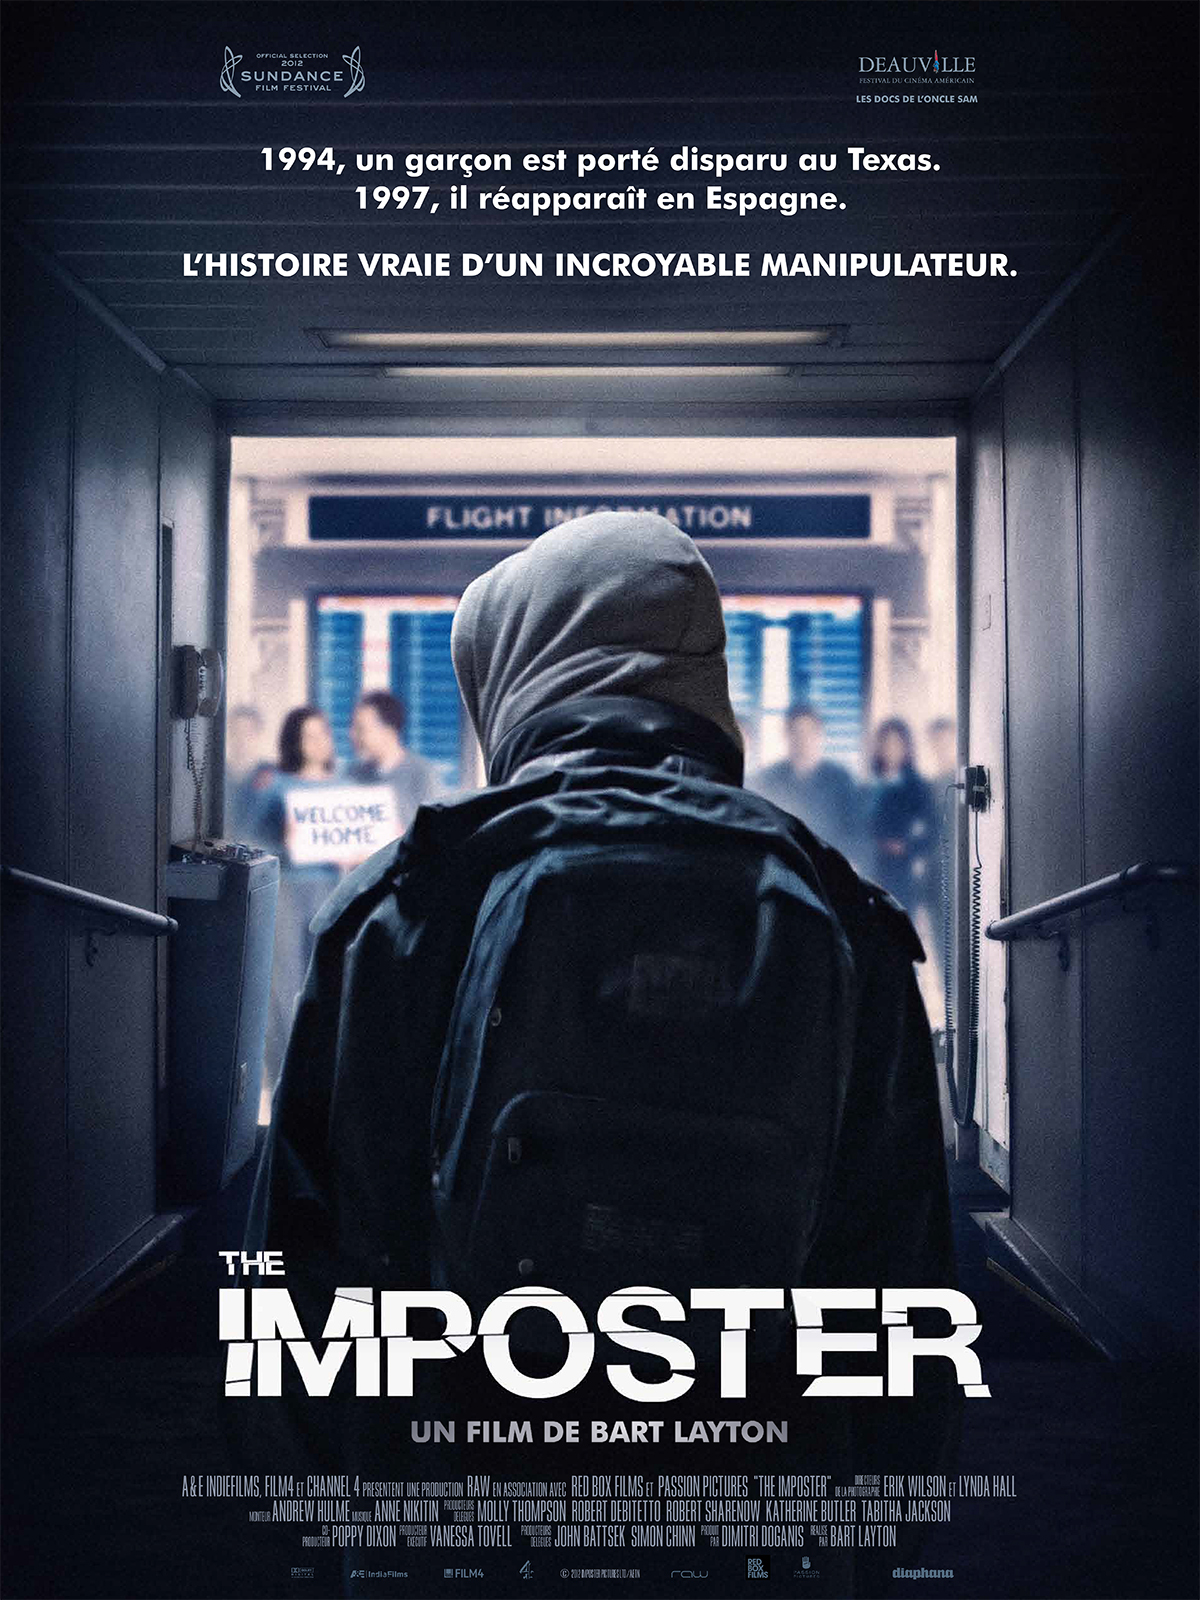 20497048 The Imposter | VOSTFR